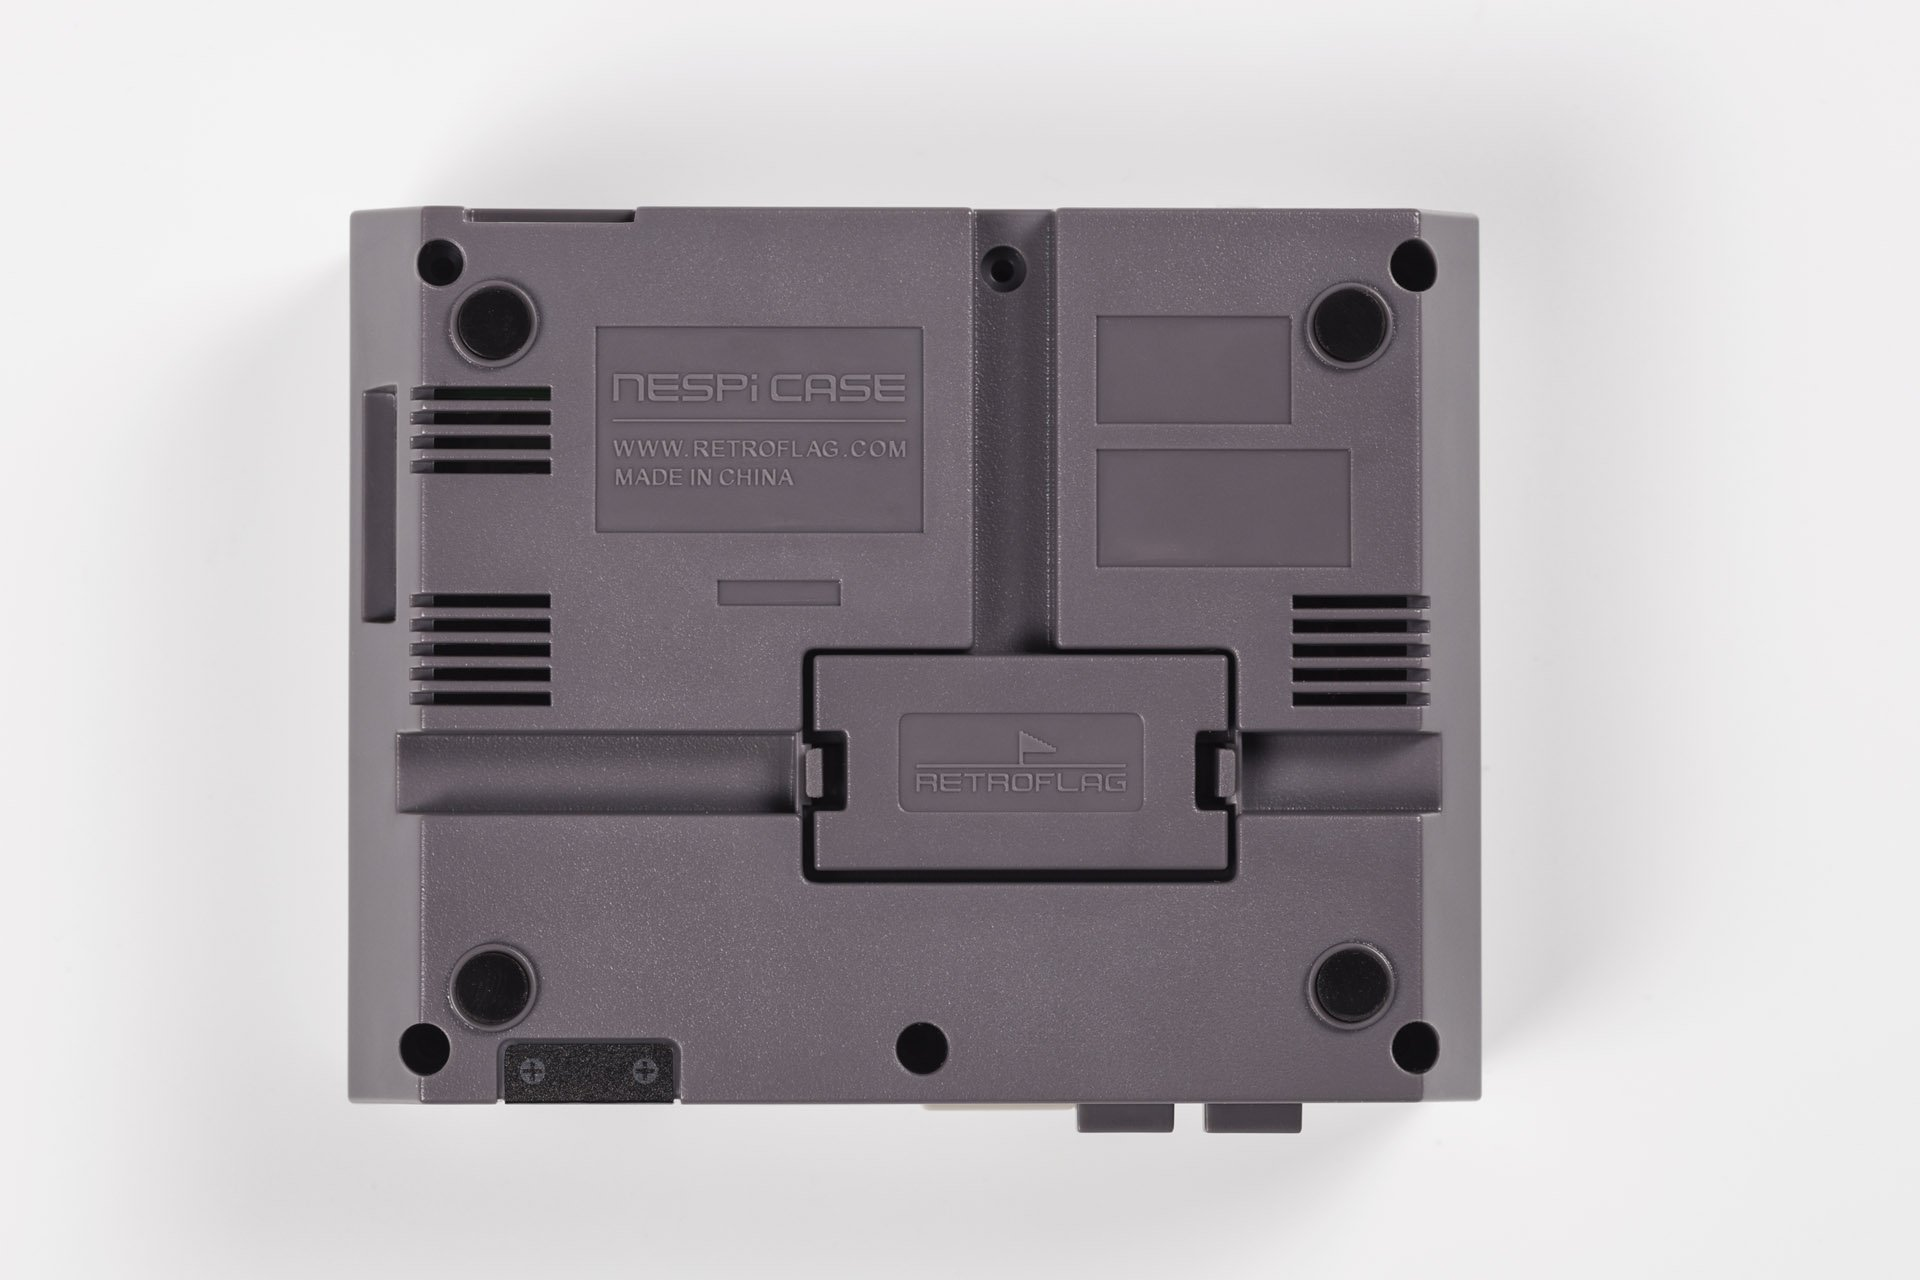 Retroflag NESPi Case Plus Functional Power button with Safe Shutdown for Raspberry Pi 3 B+ (B Plus) by Retroflag (Image #6)